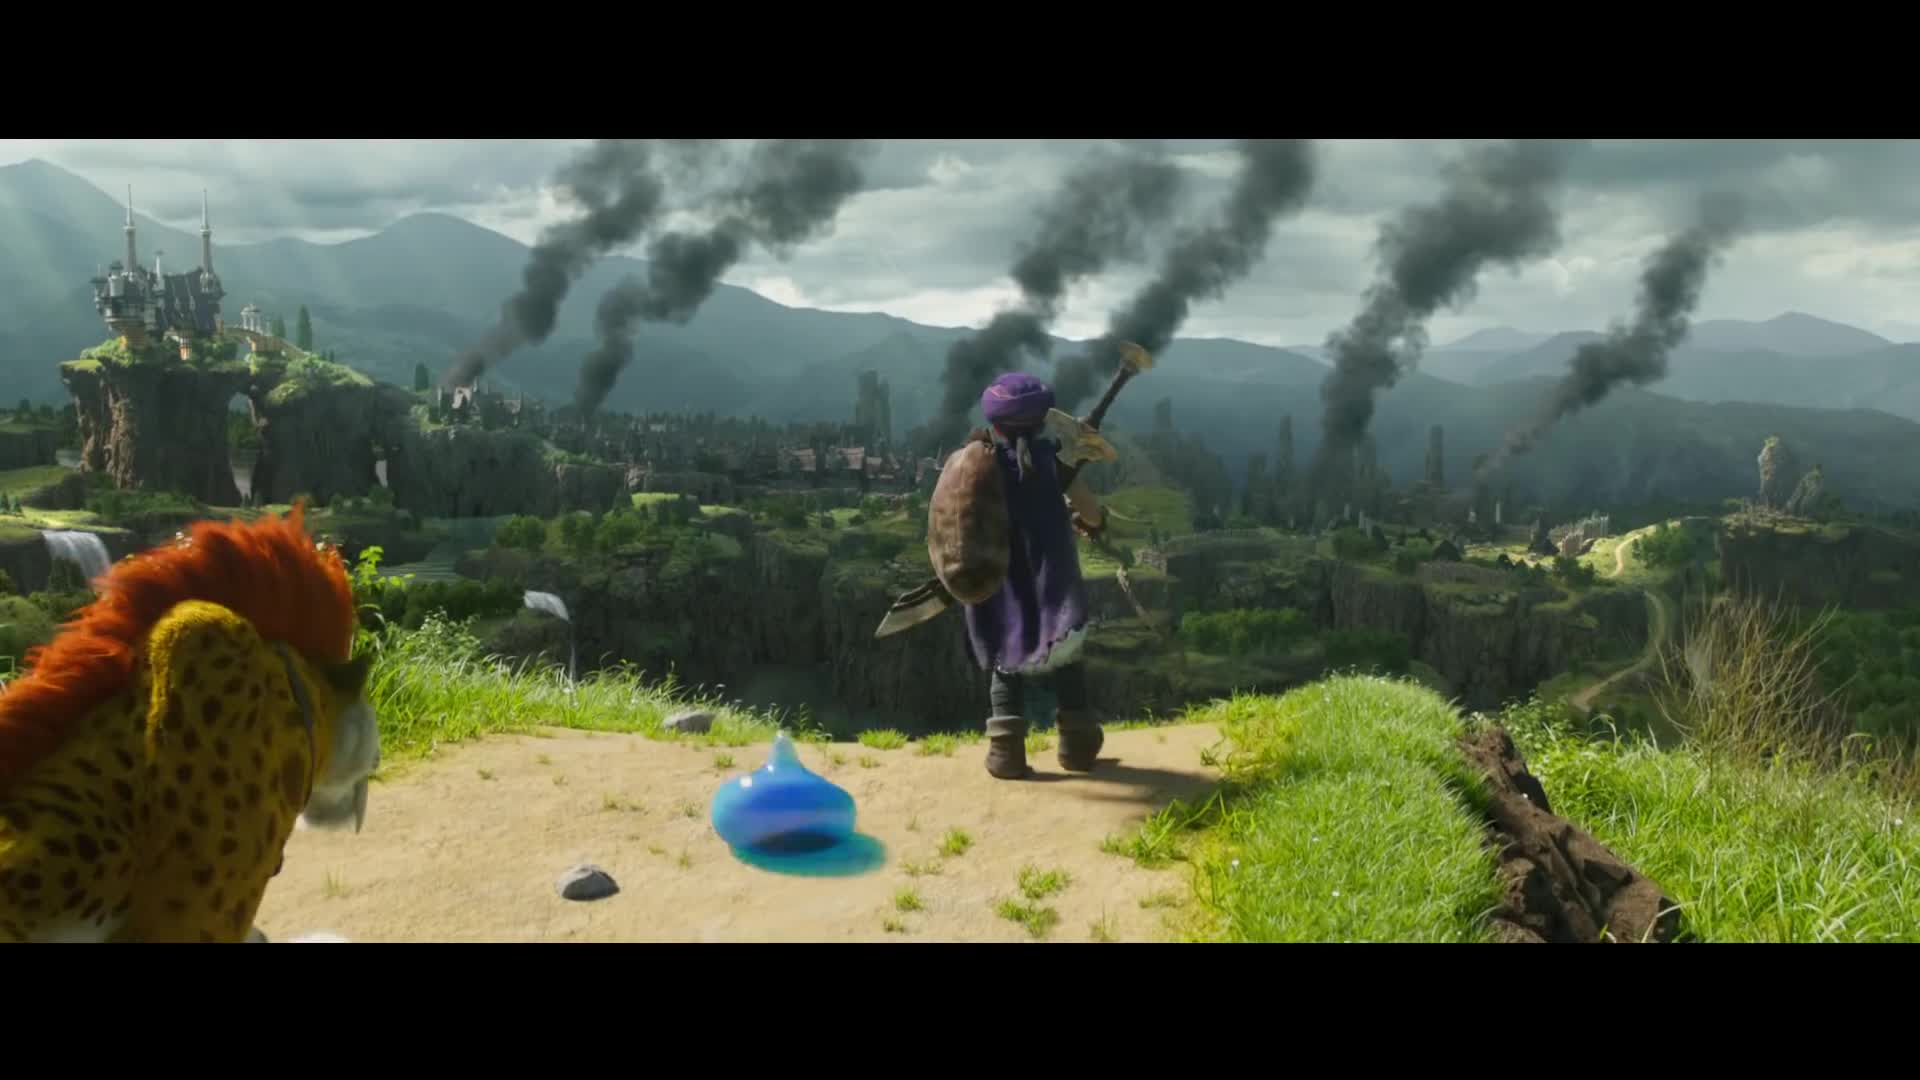 Dragon Quest movie - filmový trailer